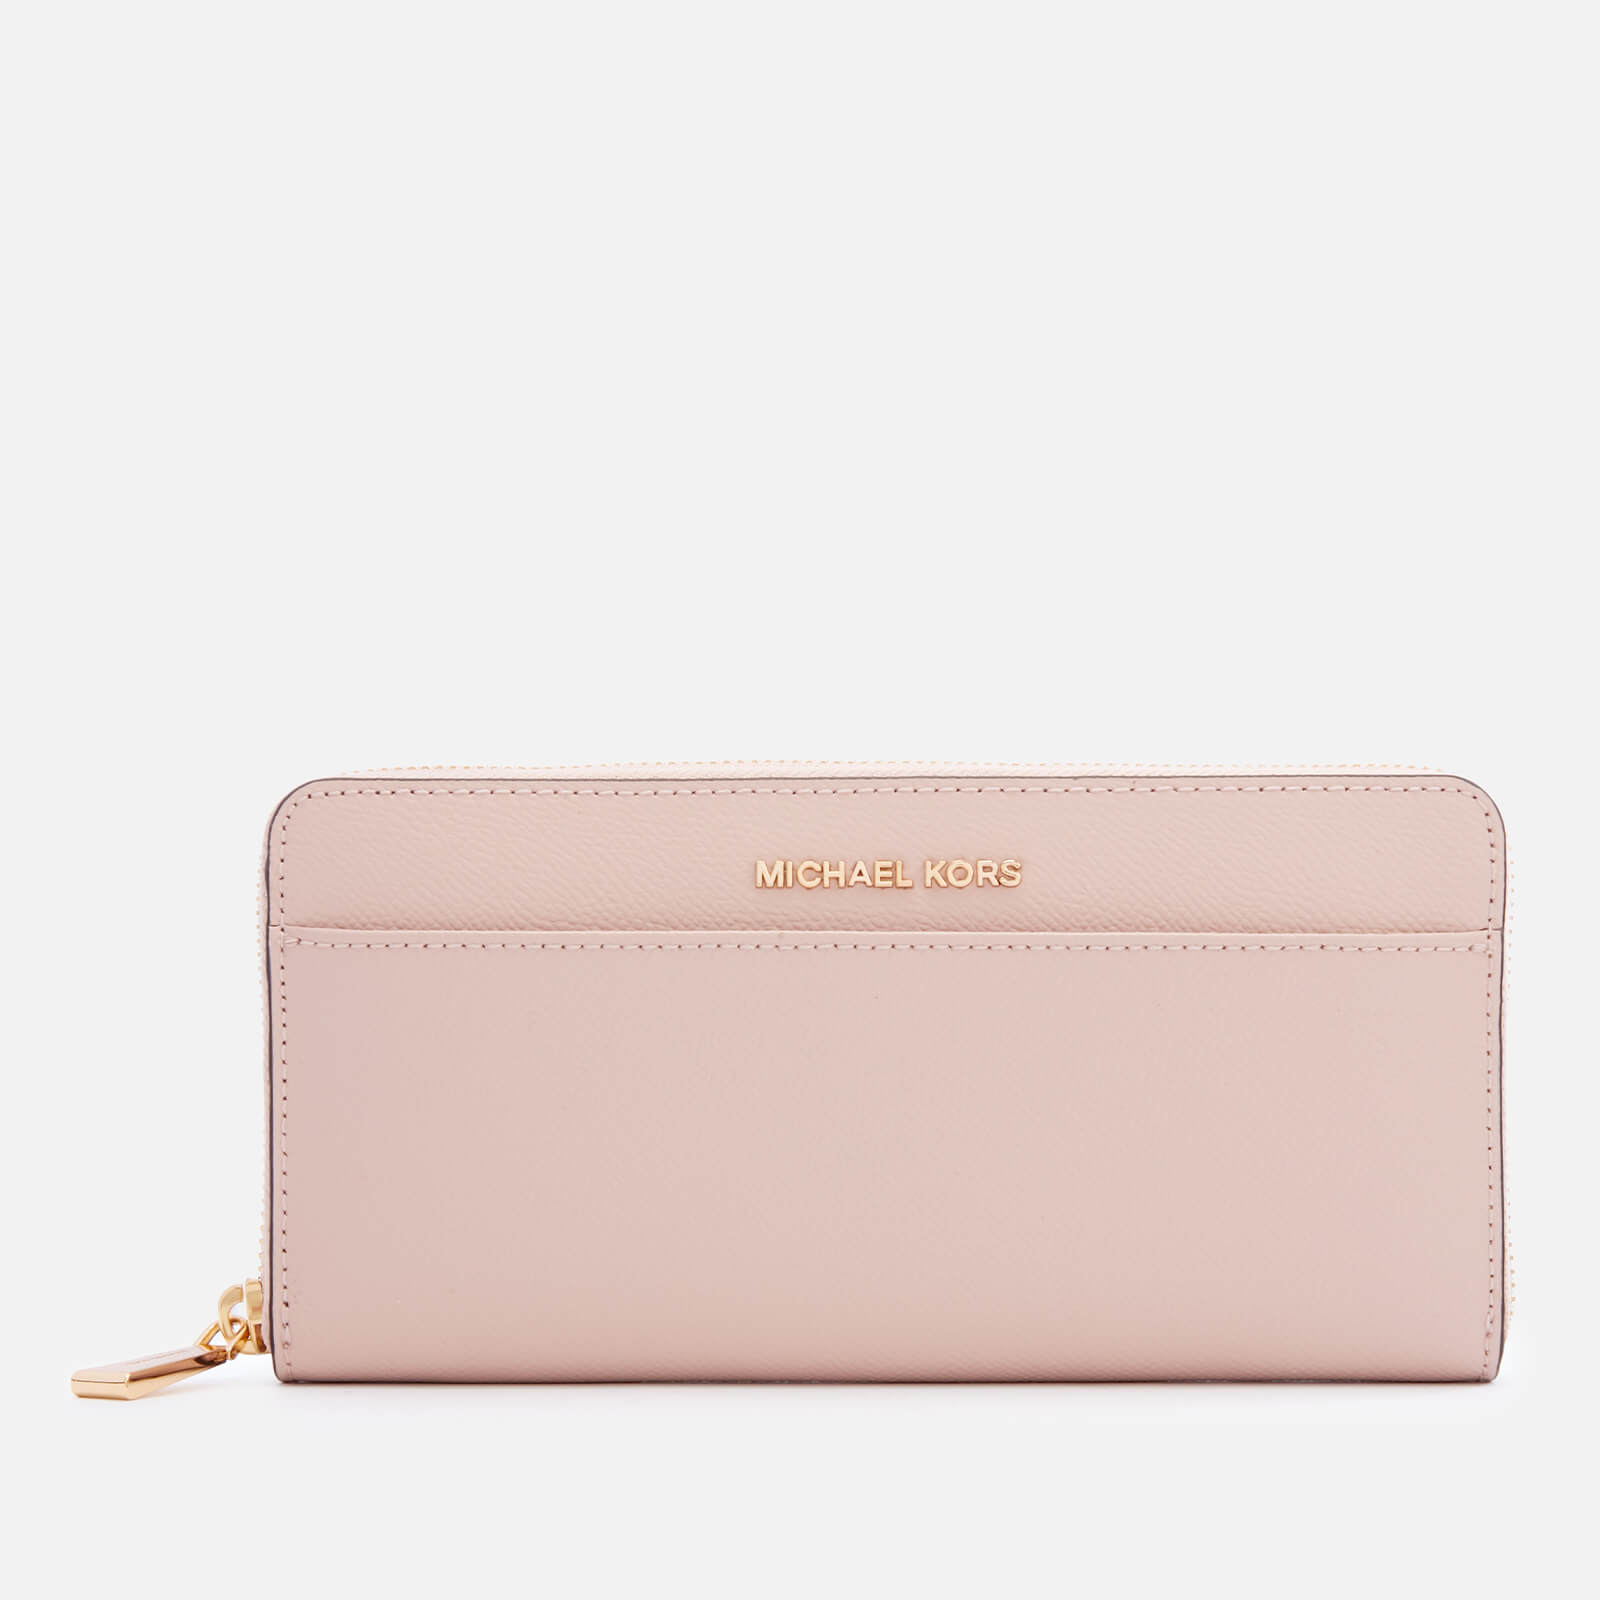 2f47d330a828 MICHAEL MICHAEL KORS Women's Money Pieces Pocket Continental Purse - Soft  Pink Womens Accessories | TheHut.com